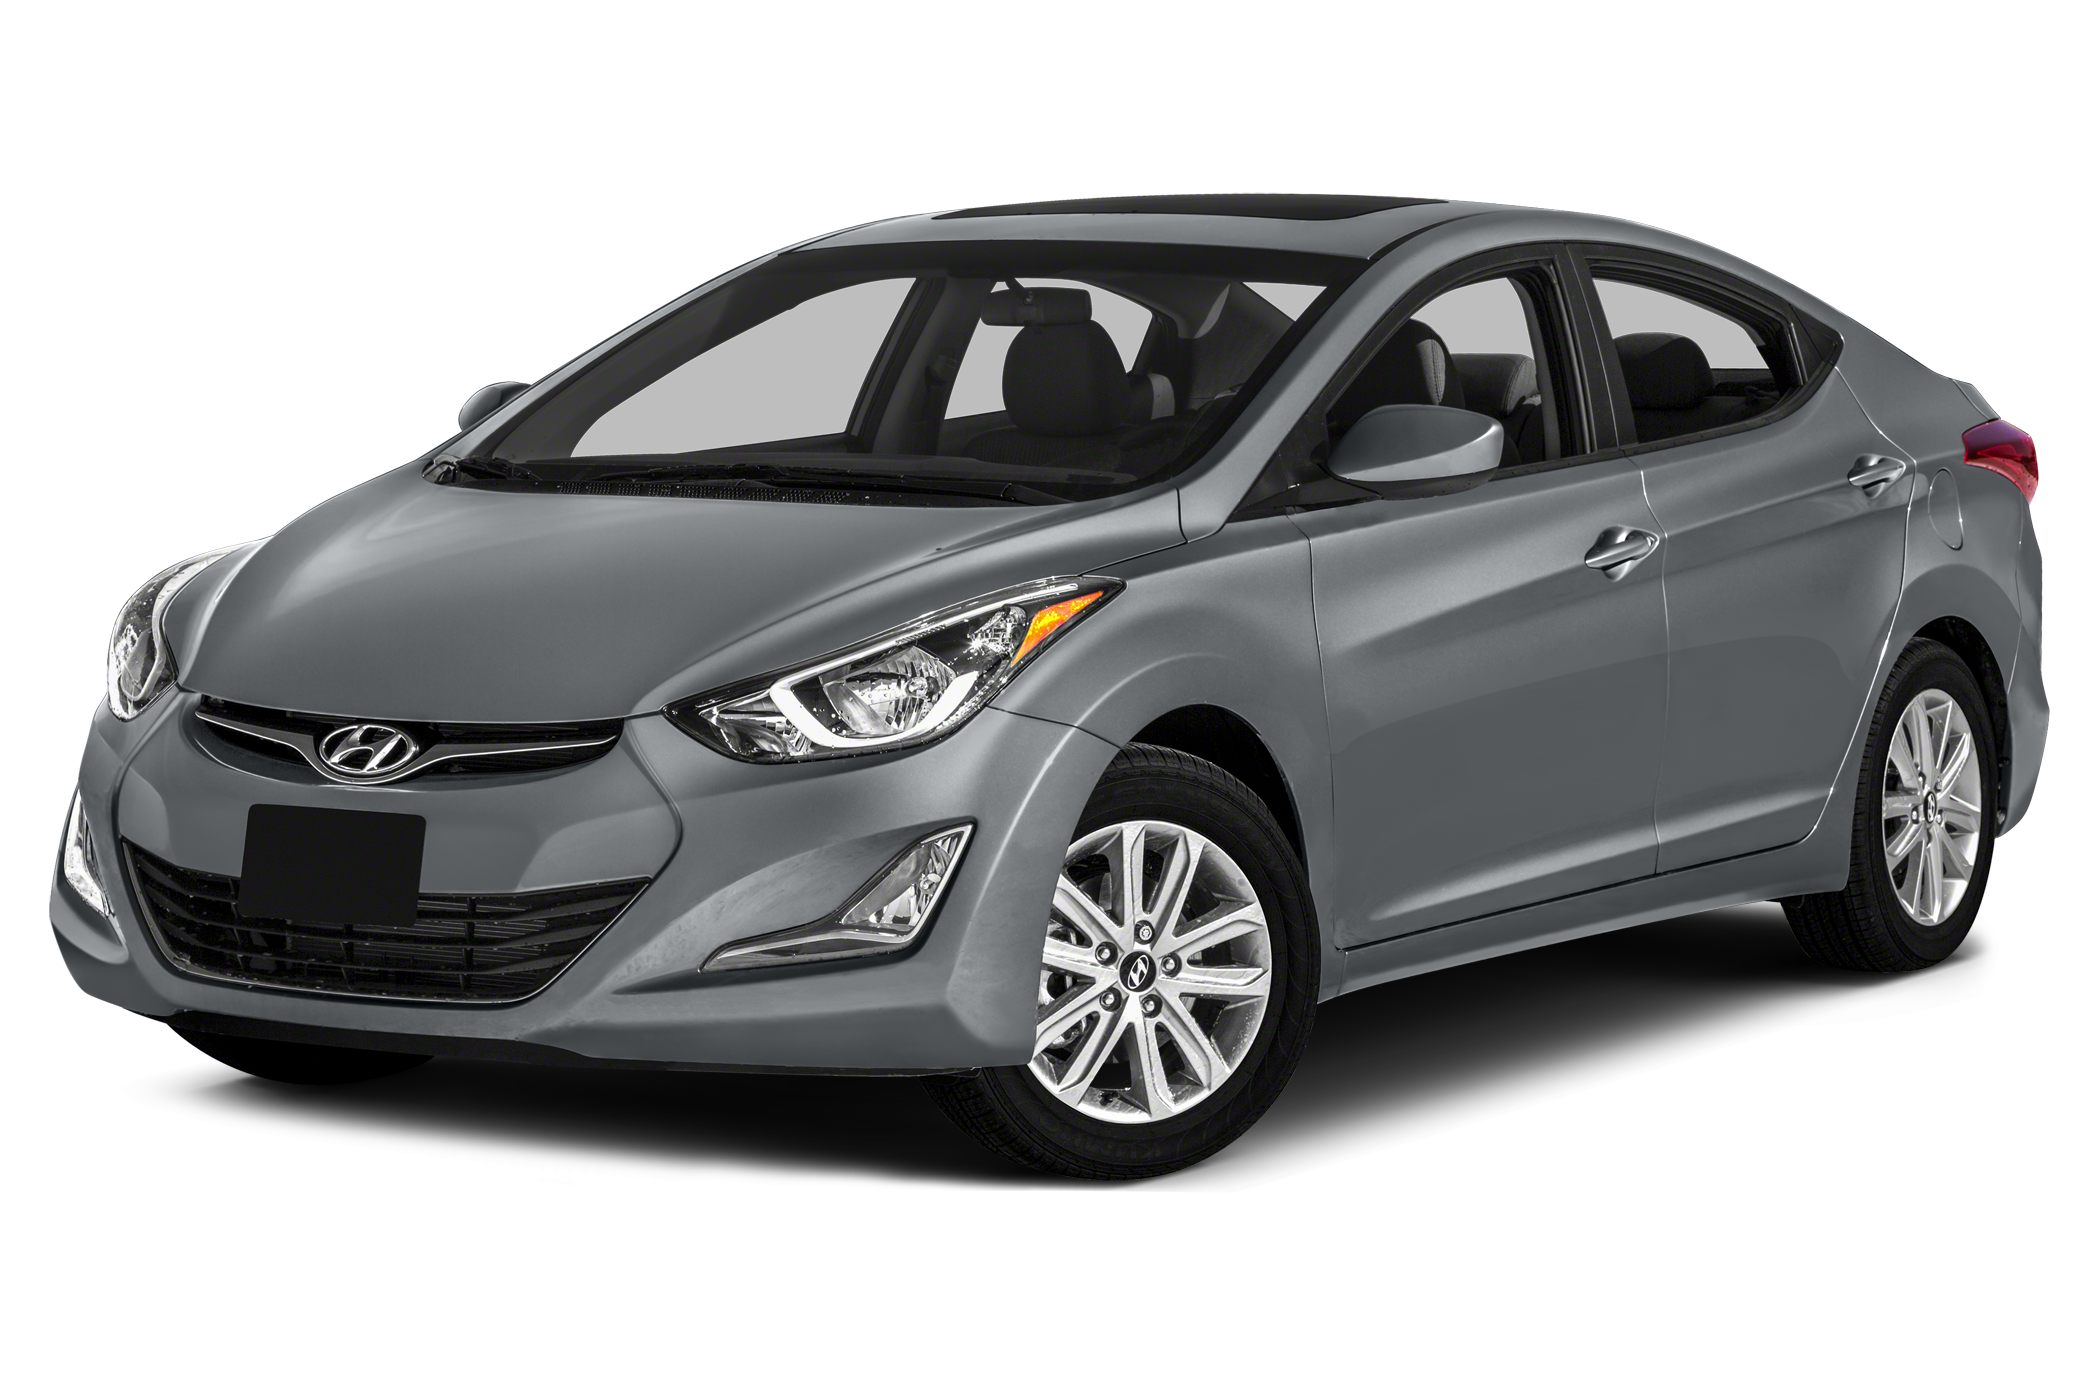 2015 Hyundai Elantra Limited Sedan for sale in Gulfport for $22,785 with 0 miles.